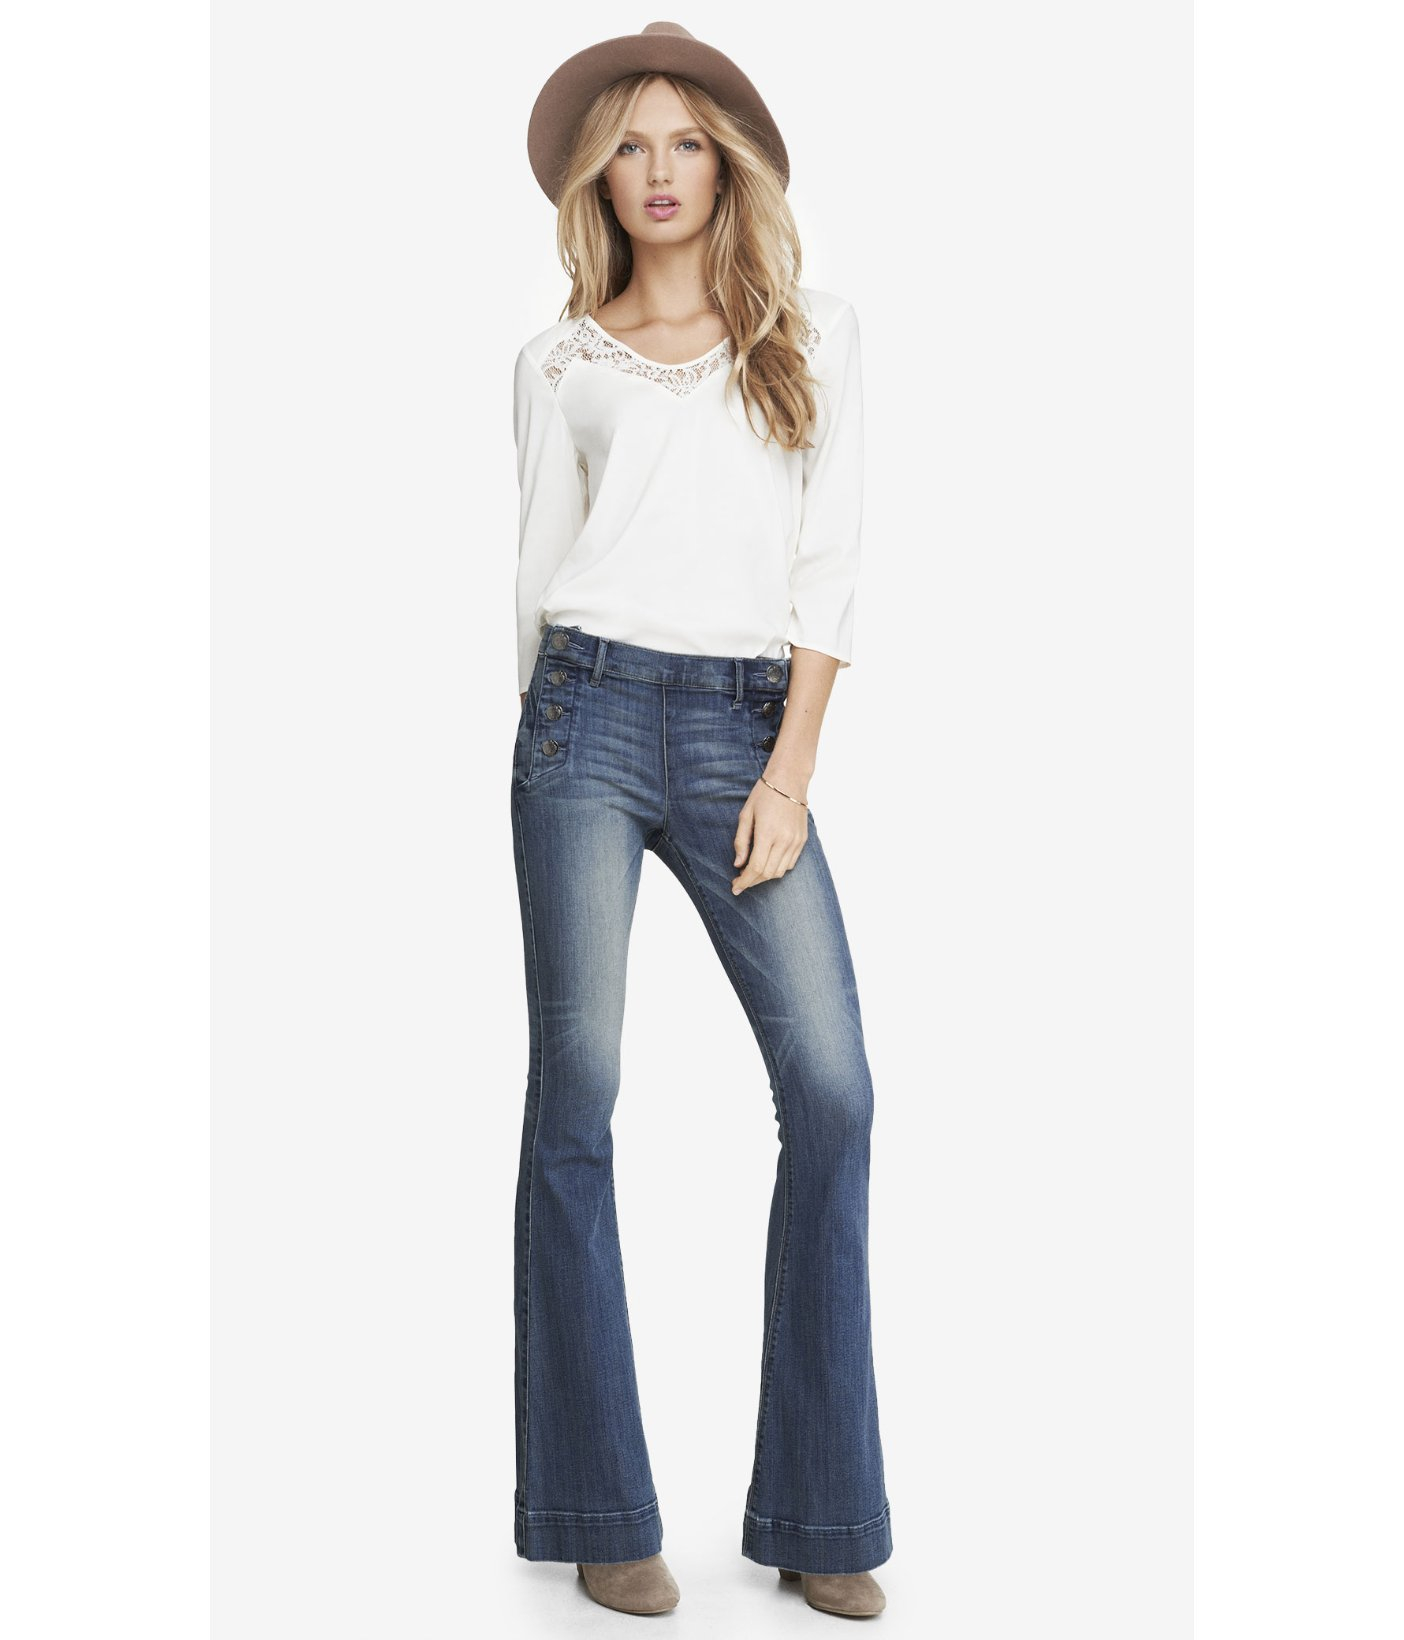 9bc76c3b344 Lyst - Express Medium Wash Mid Rise Bell Flare Sailor Jean in Blue